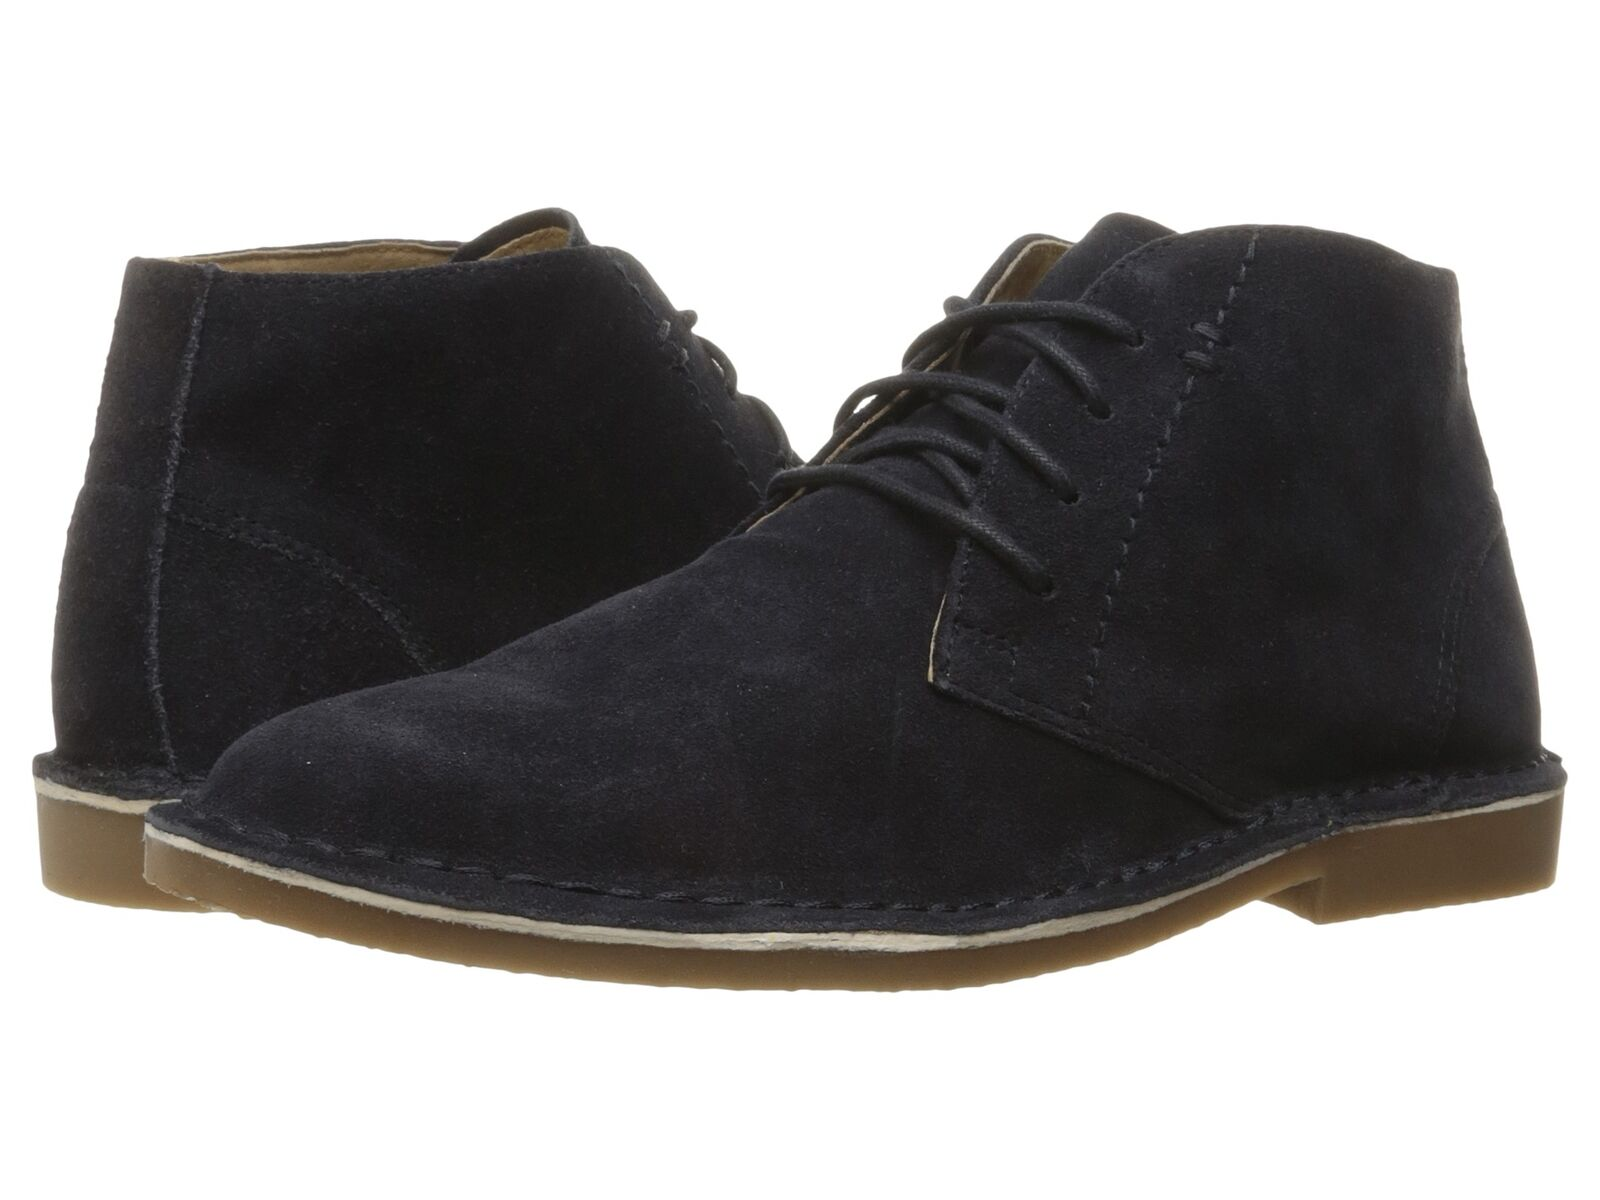 Nunn Bush Men's GALLOWAY chukka Navy Leather Boots 84679-410 84679-410 84679-410 ae3057